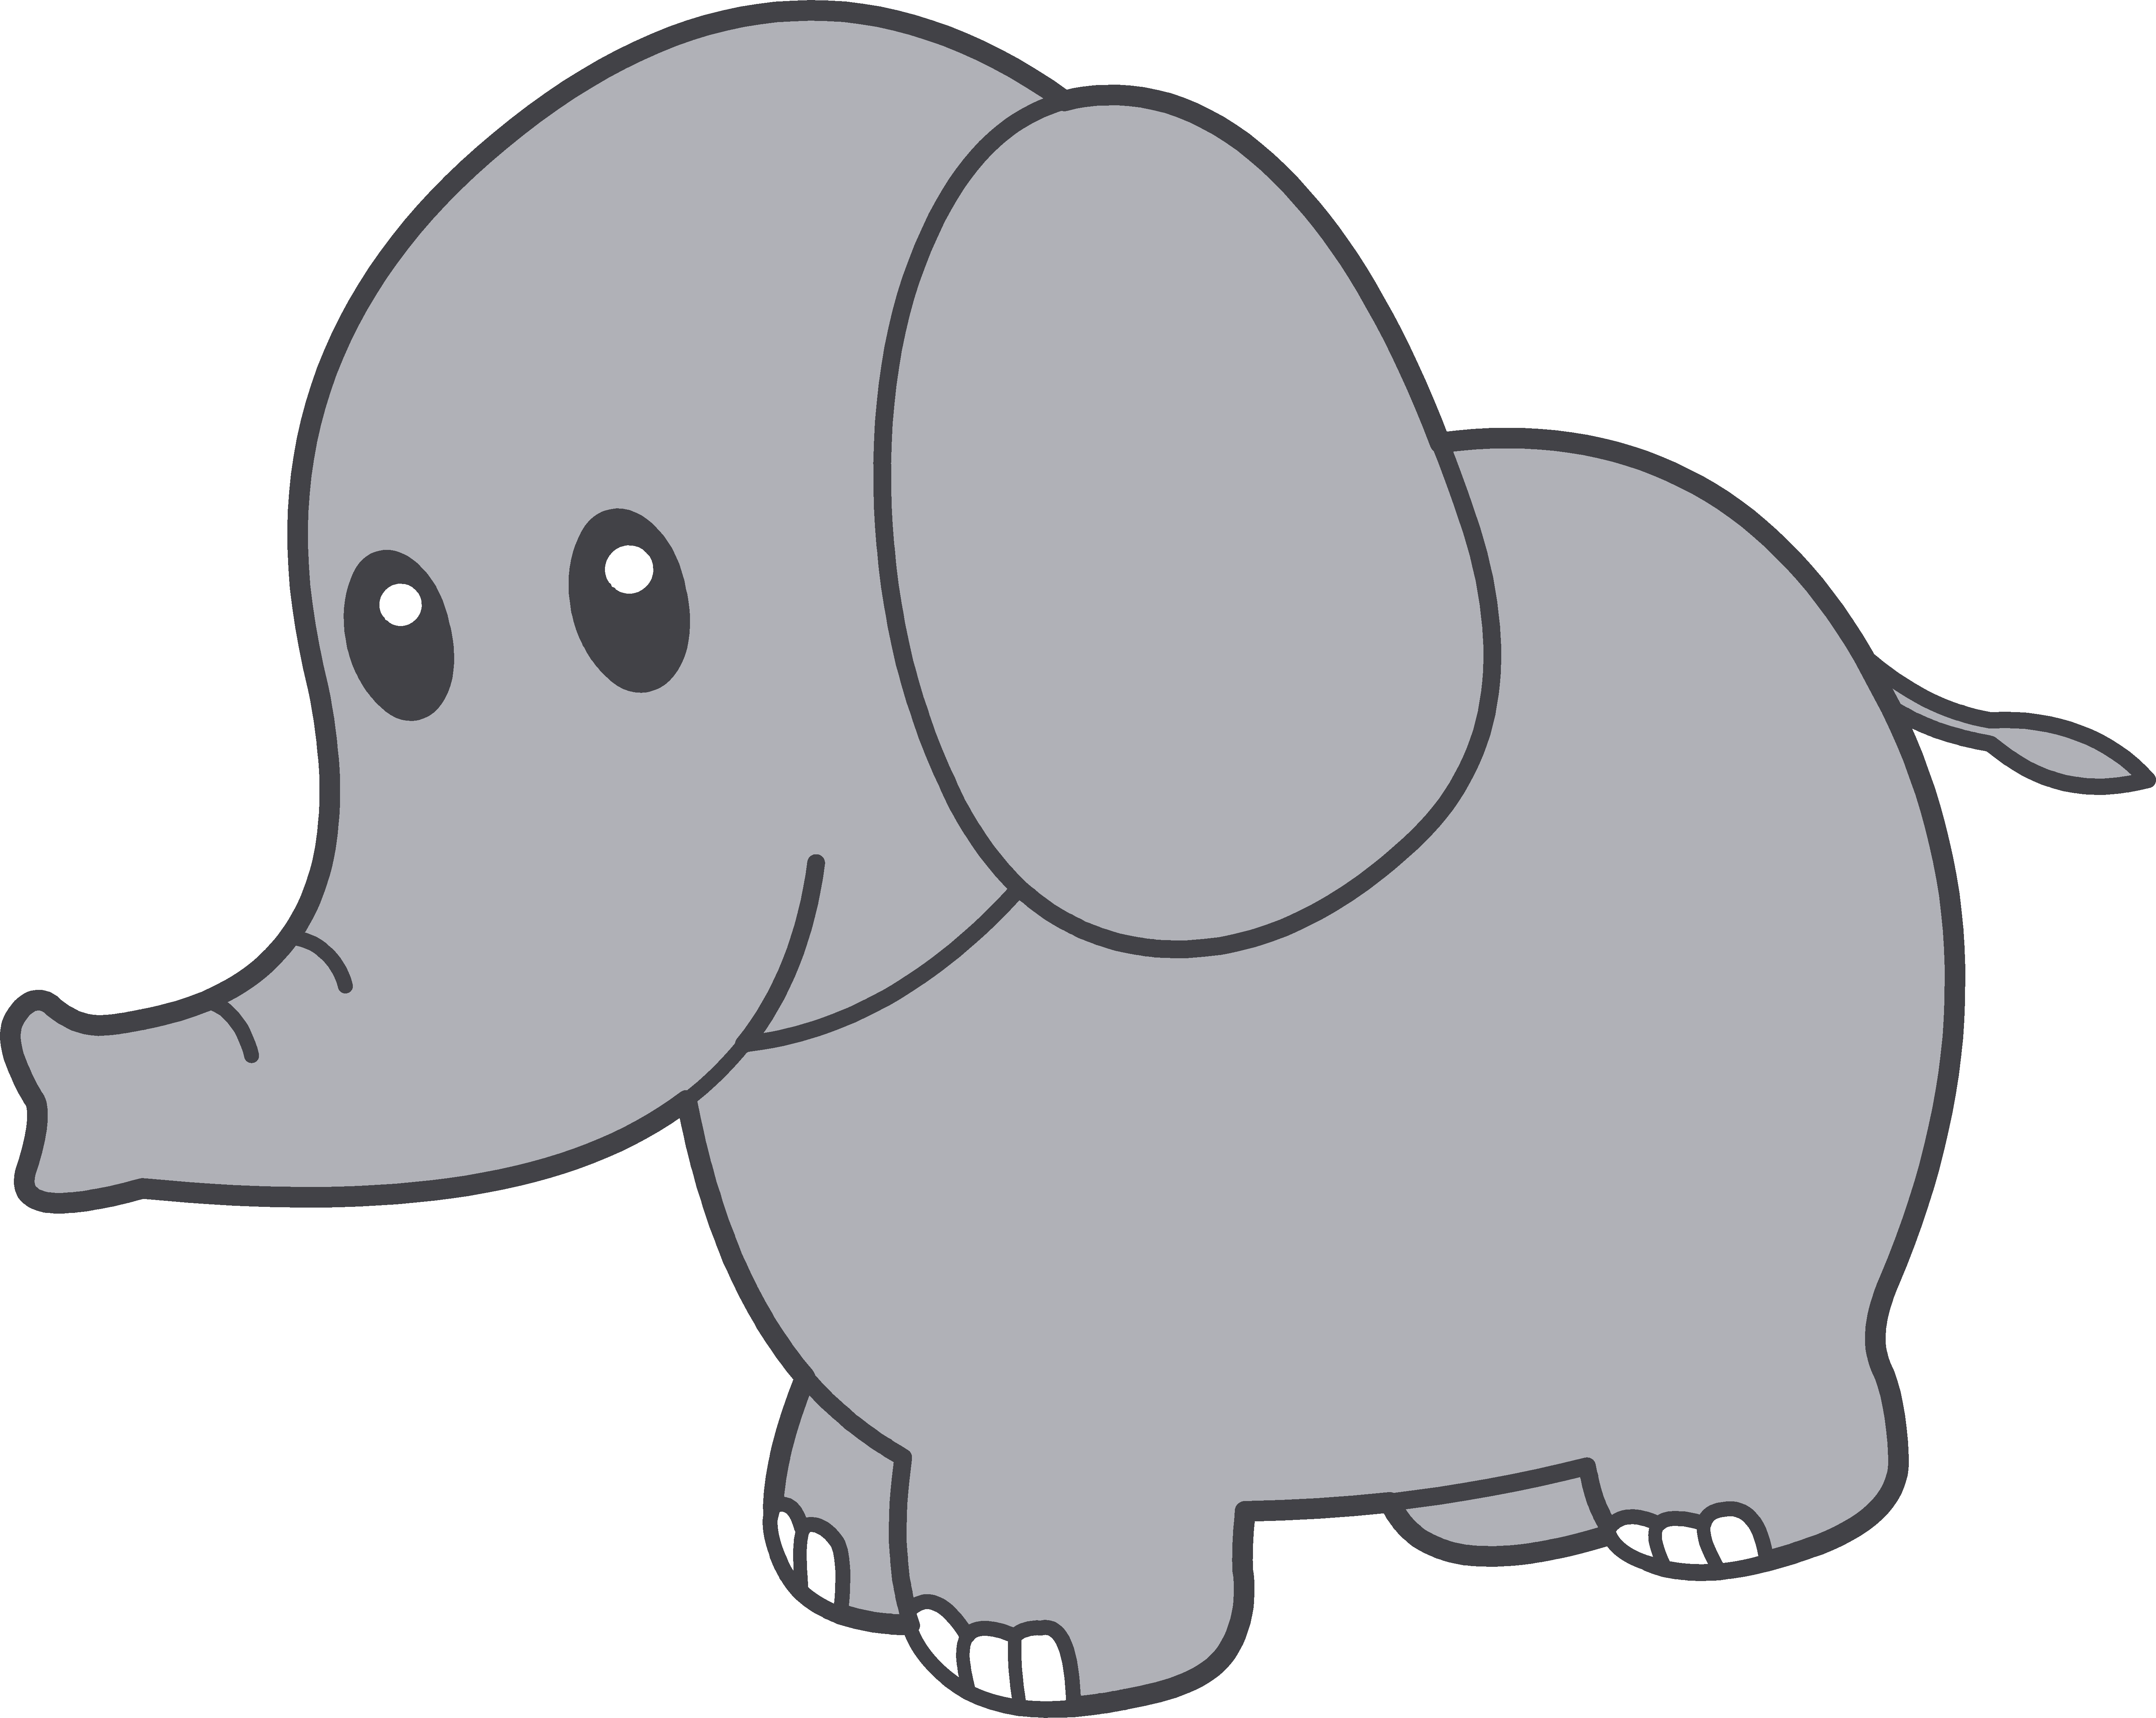 1 elephant clipart image library stock Cute Elephant Clipart & Cute Elephant Clip Art Images - ClipartALL.com image library stock